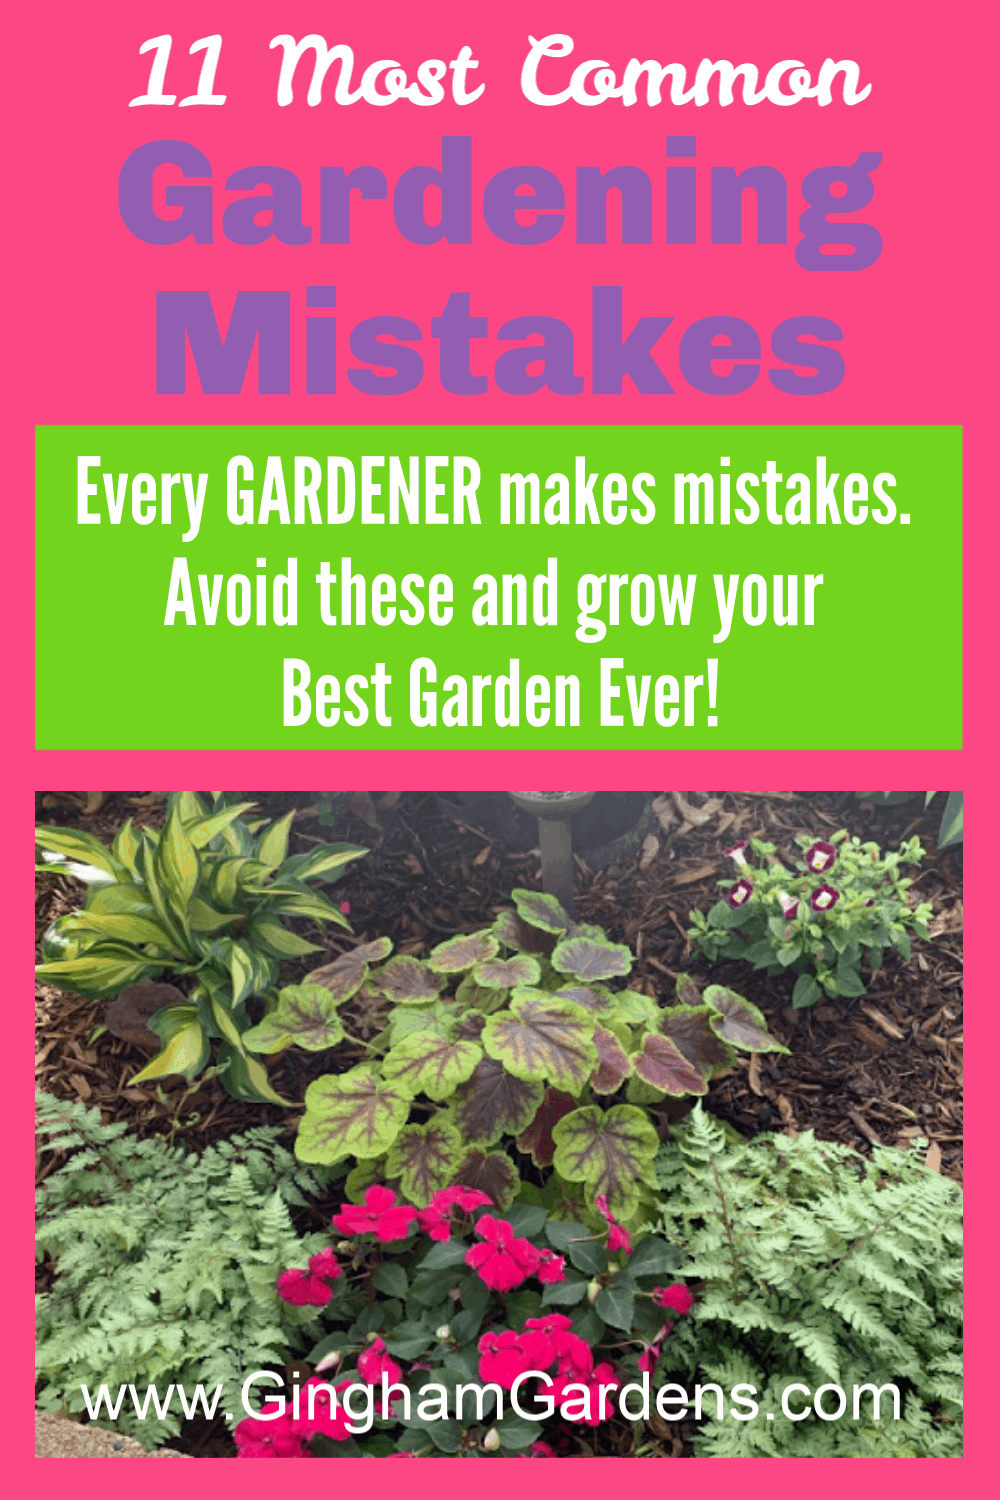 Image of a Garden with Text Overlay - 11 Most Common Gardening Mistakes